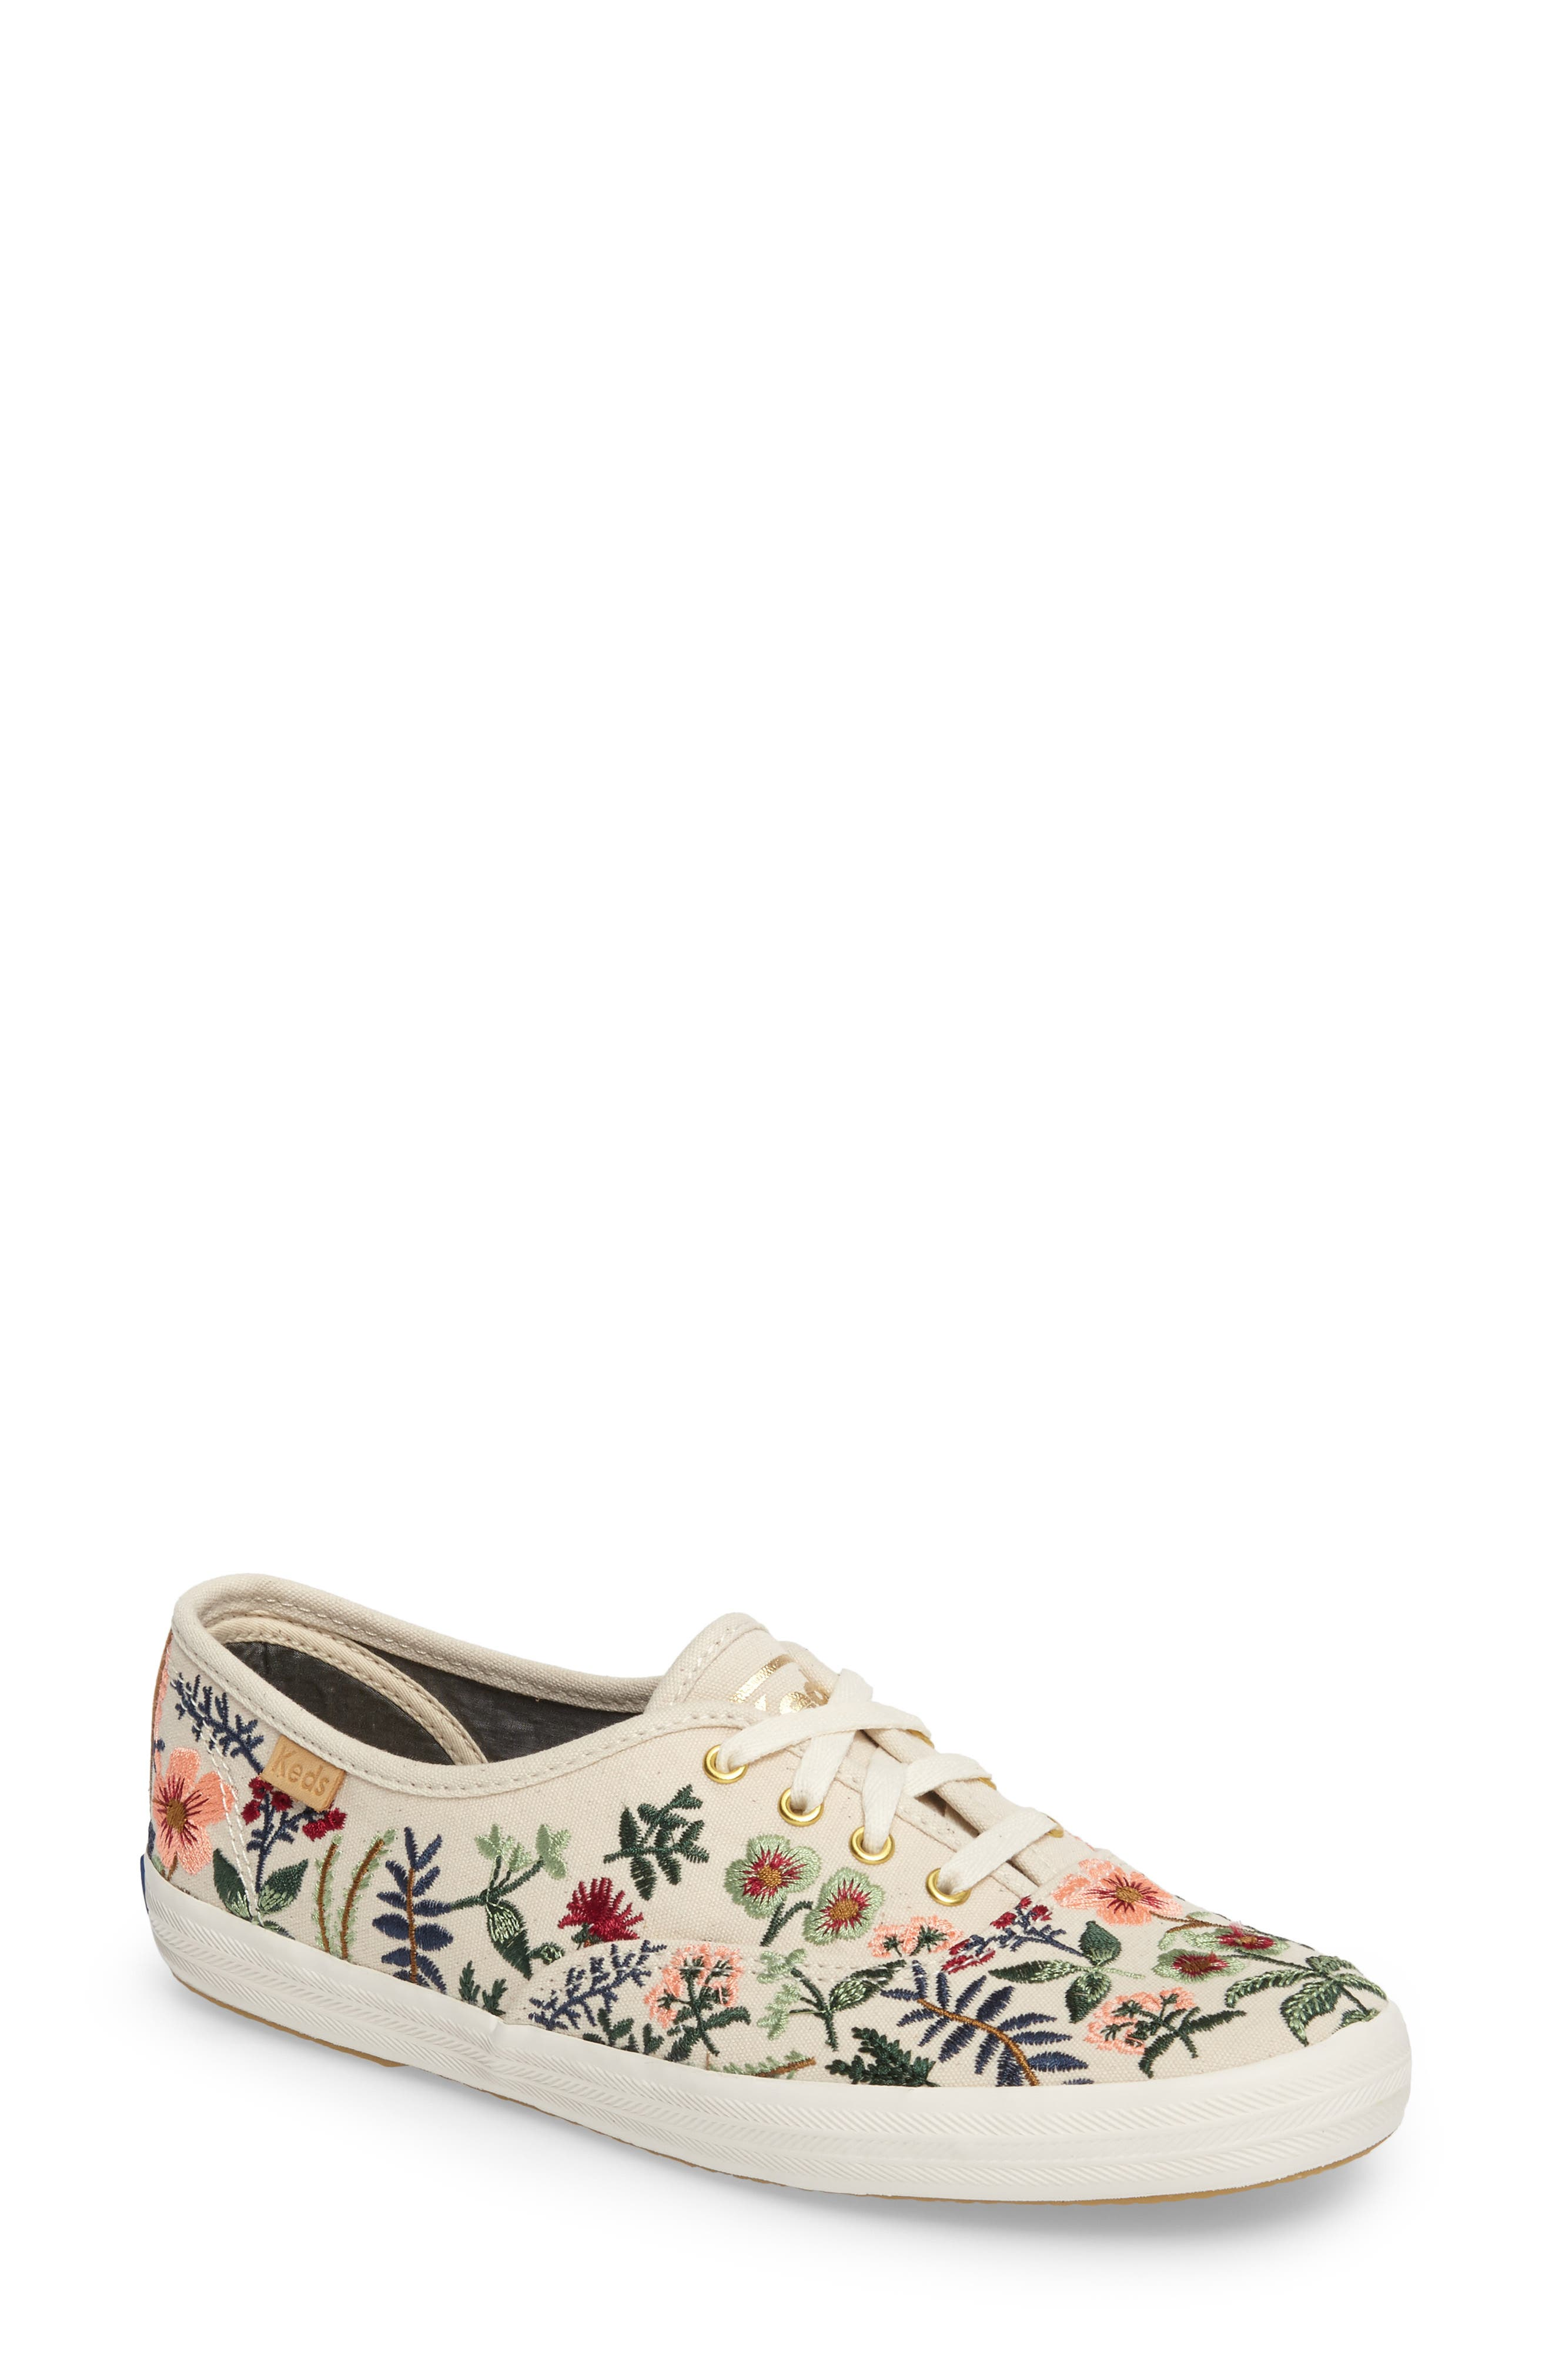 x Rifle Paper Co. Herb Garden Embroidered Sneaker,                             Main thumbnail 1, color,                             101